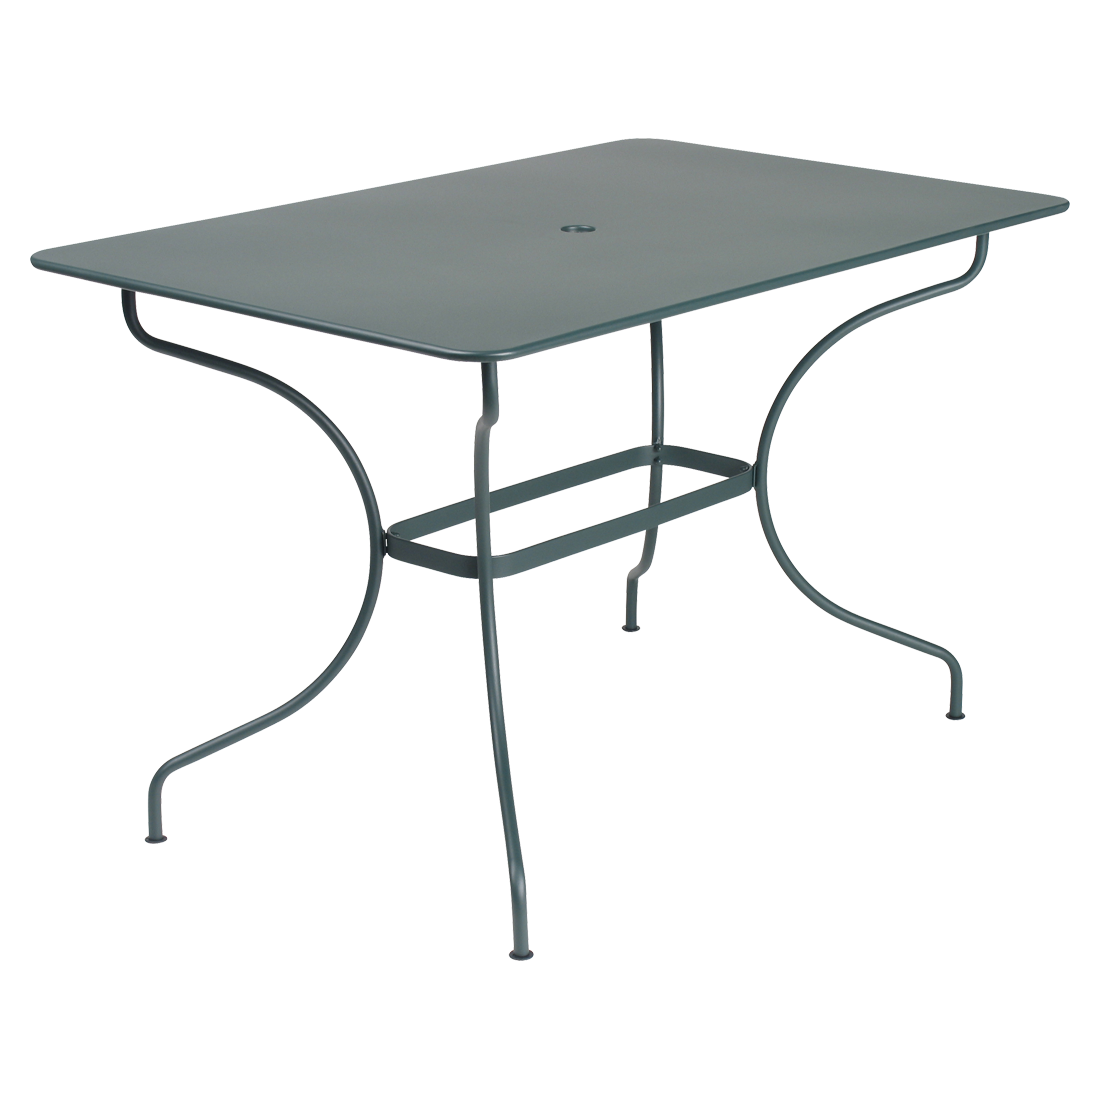 117x77 cm op ra table garden table for 6 - Fermob opera table ...